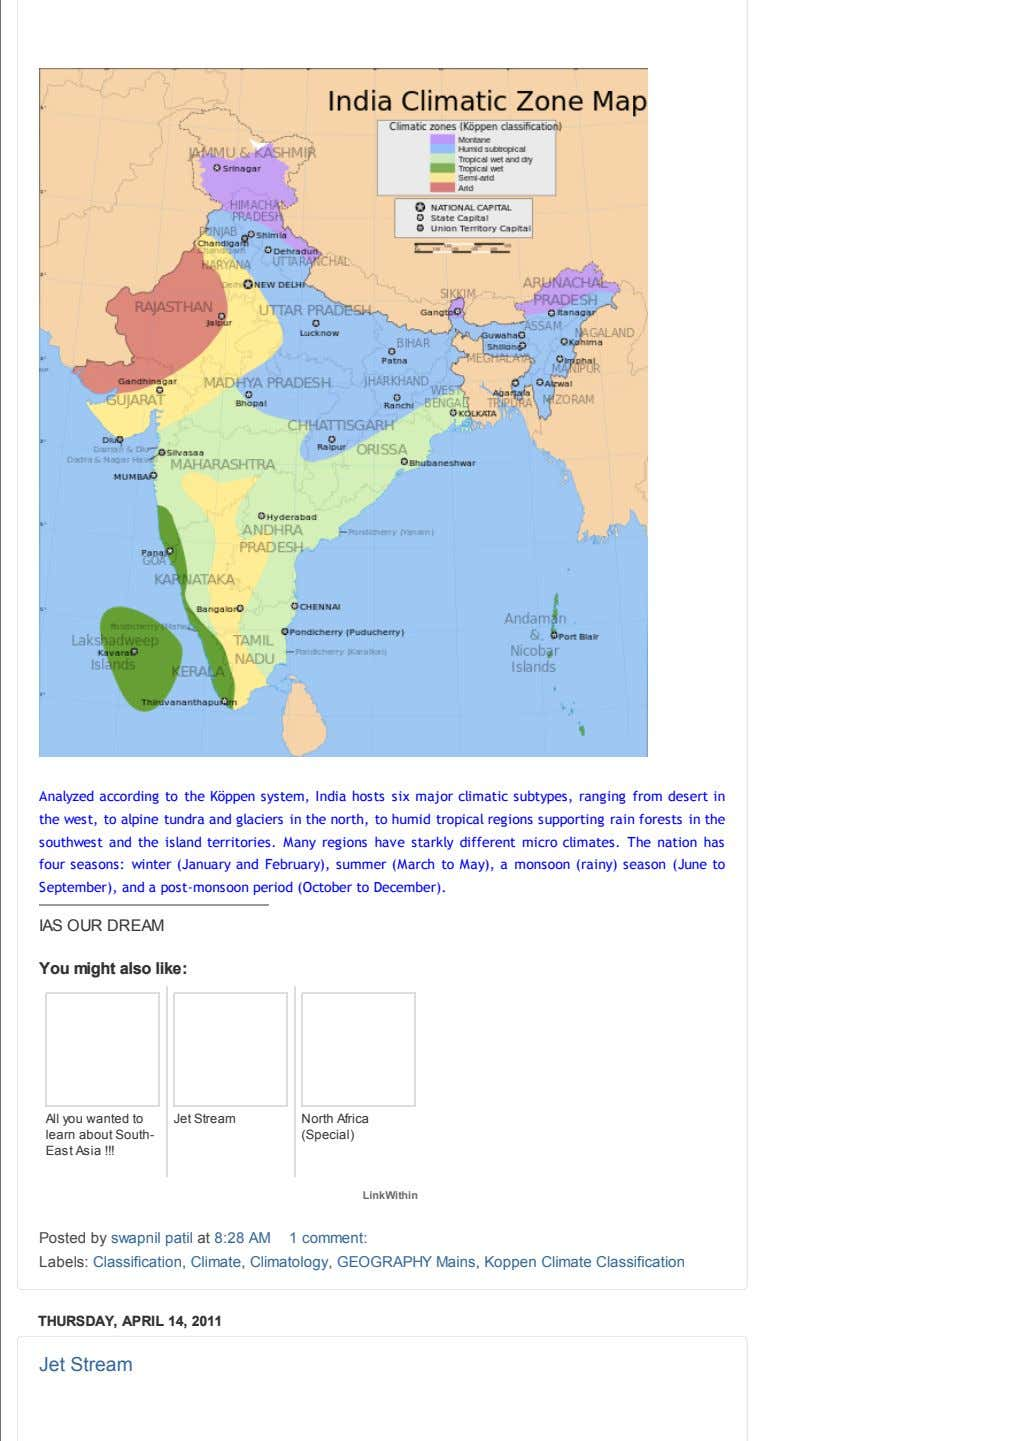 Analyzed according to the Köppen system, India hosts six major climatic subtypes, ranging from desert in